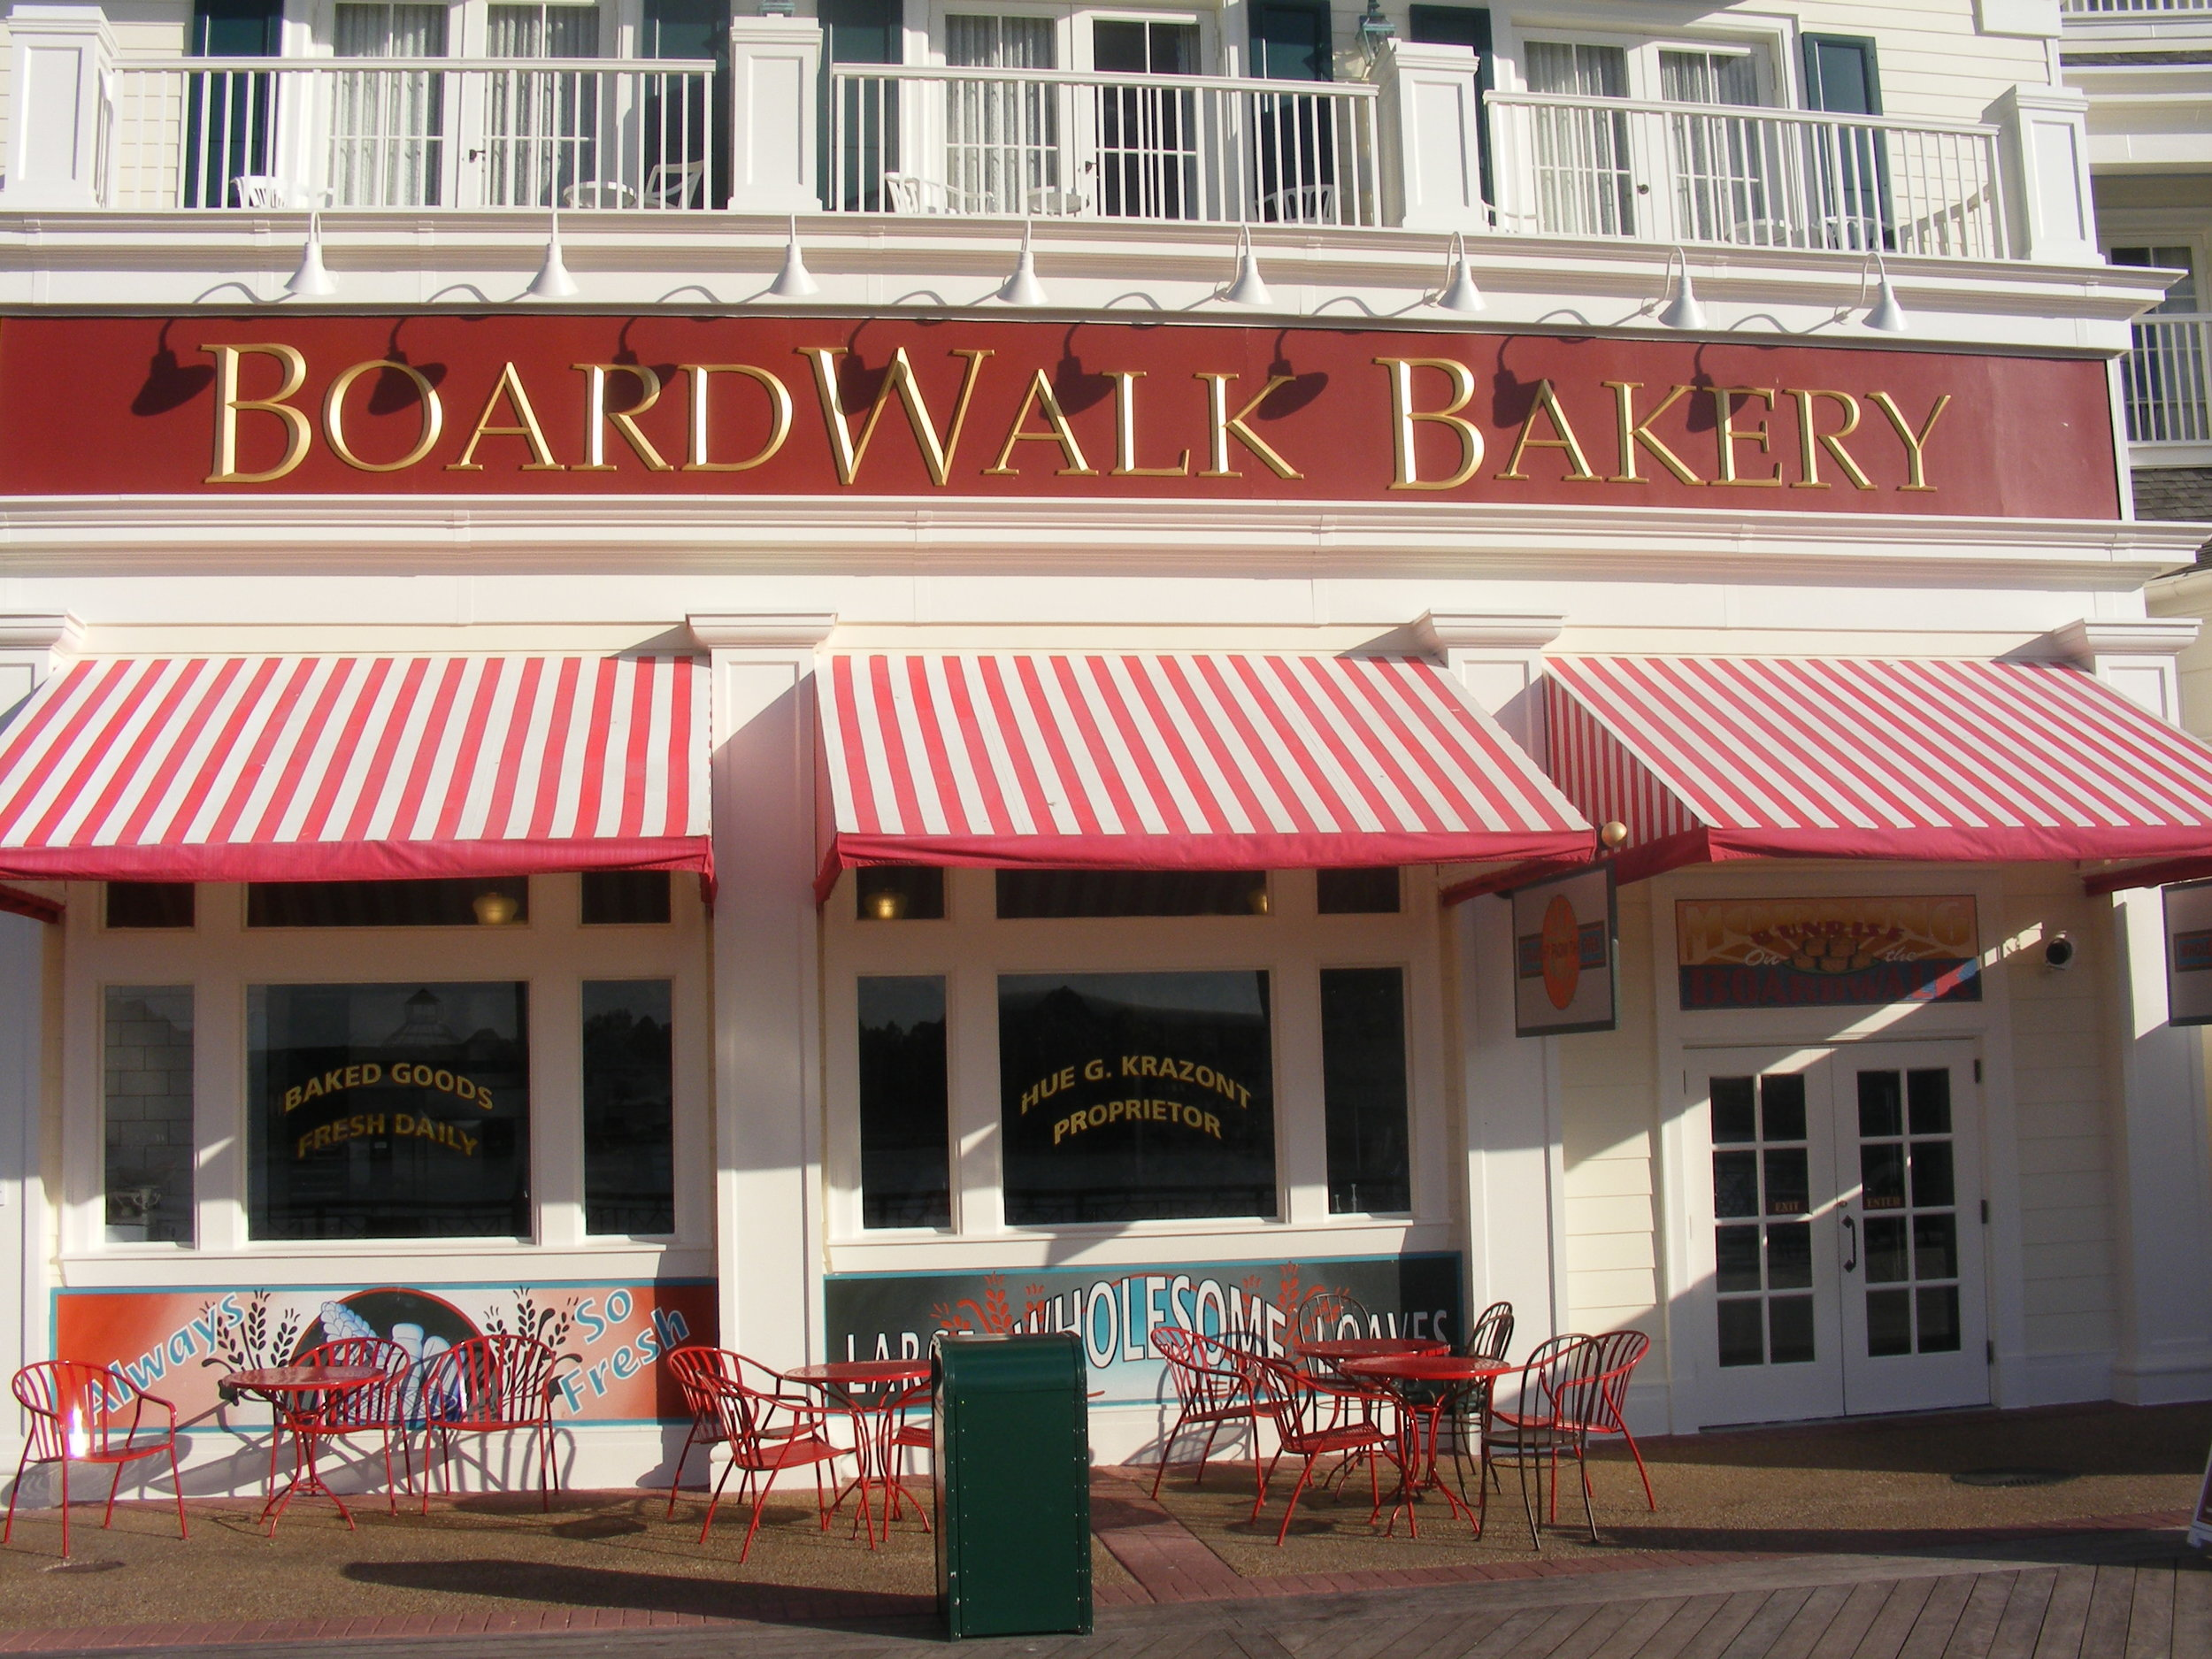 BoardWalk Bakery, Disney's BoardWalk